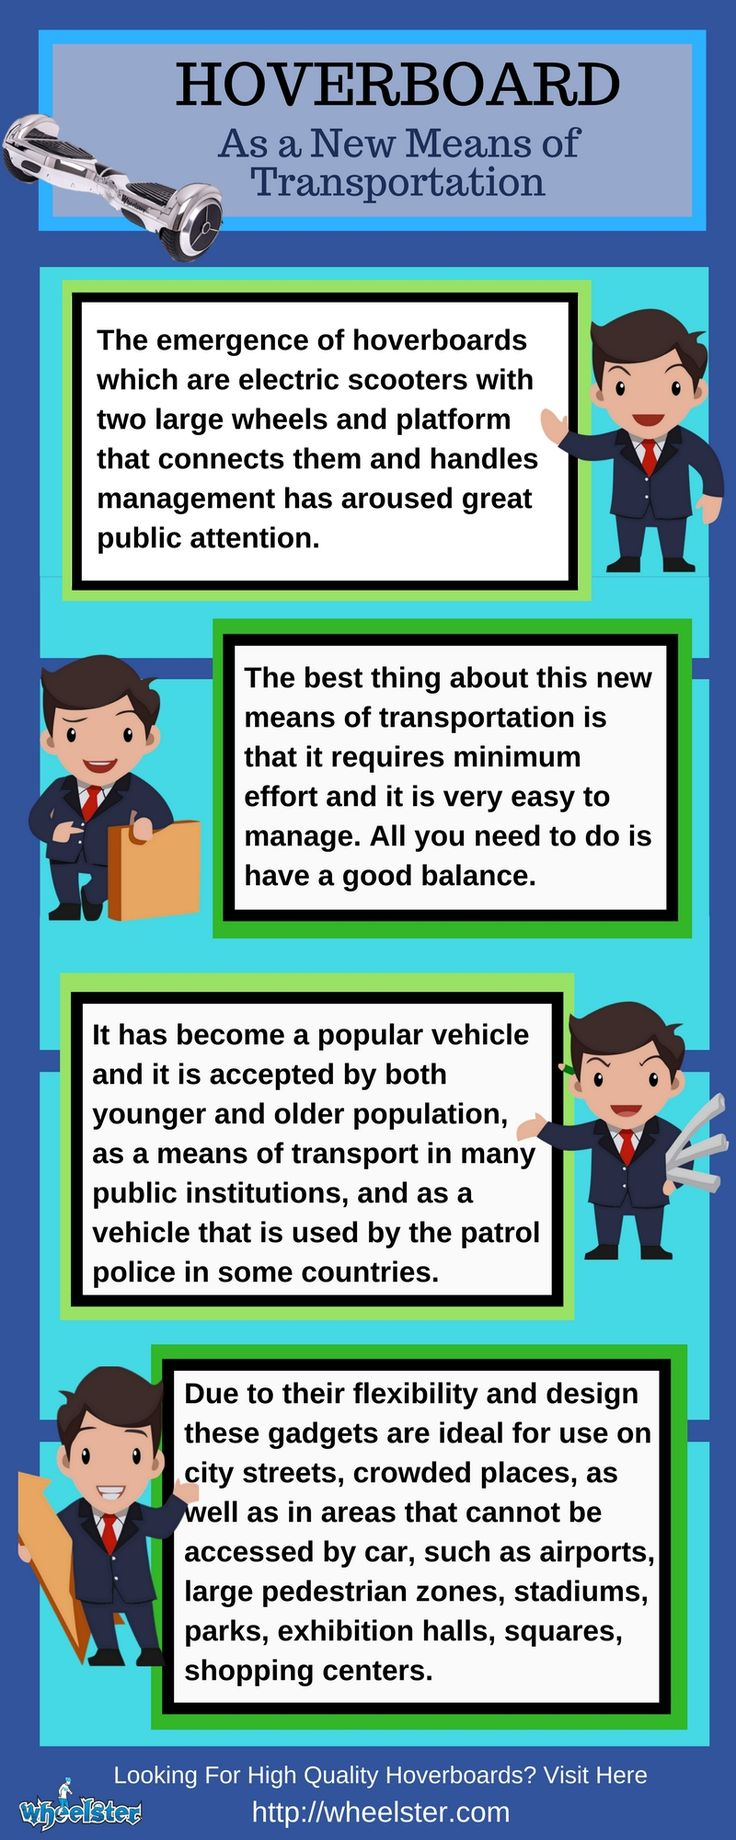 The best thing about this new means of transportation is that it requires minimum effort and it is very easy to manage. All you need to do is have a good balance.